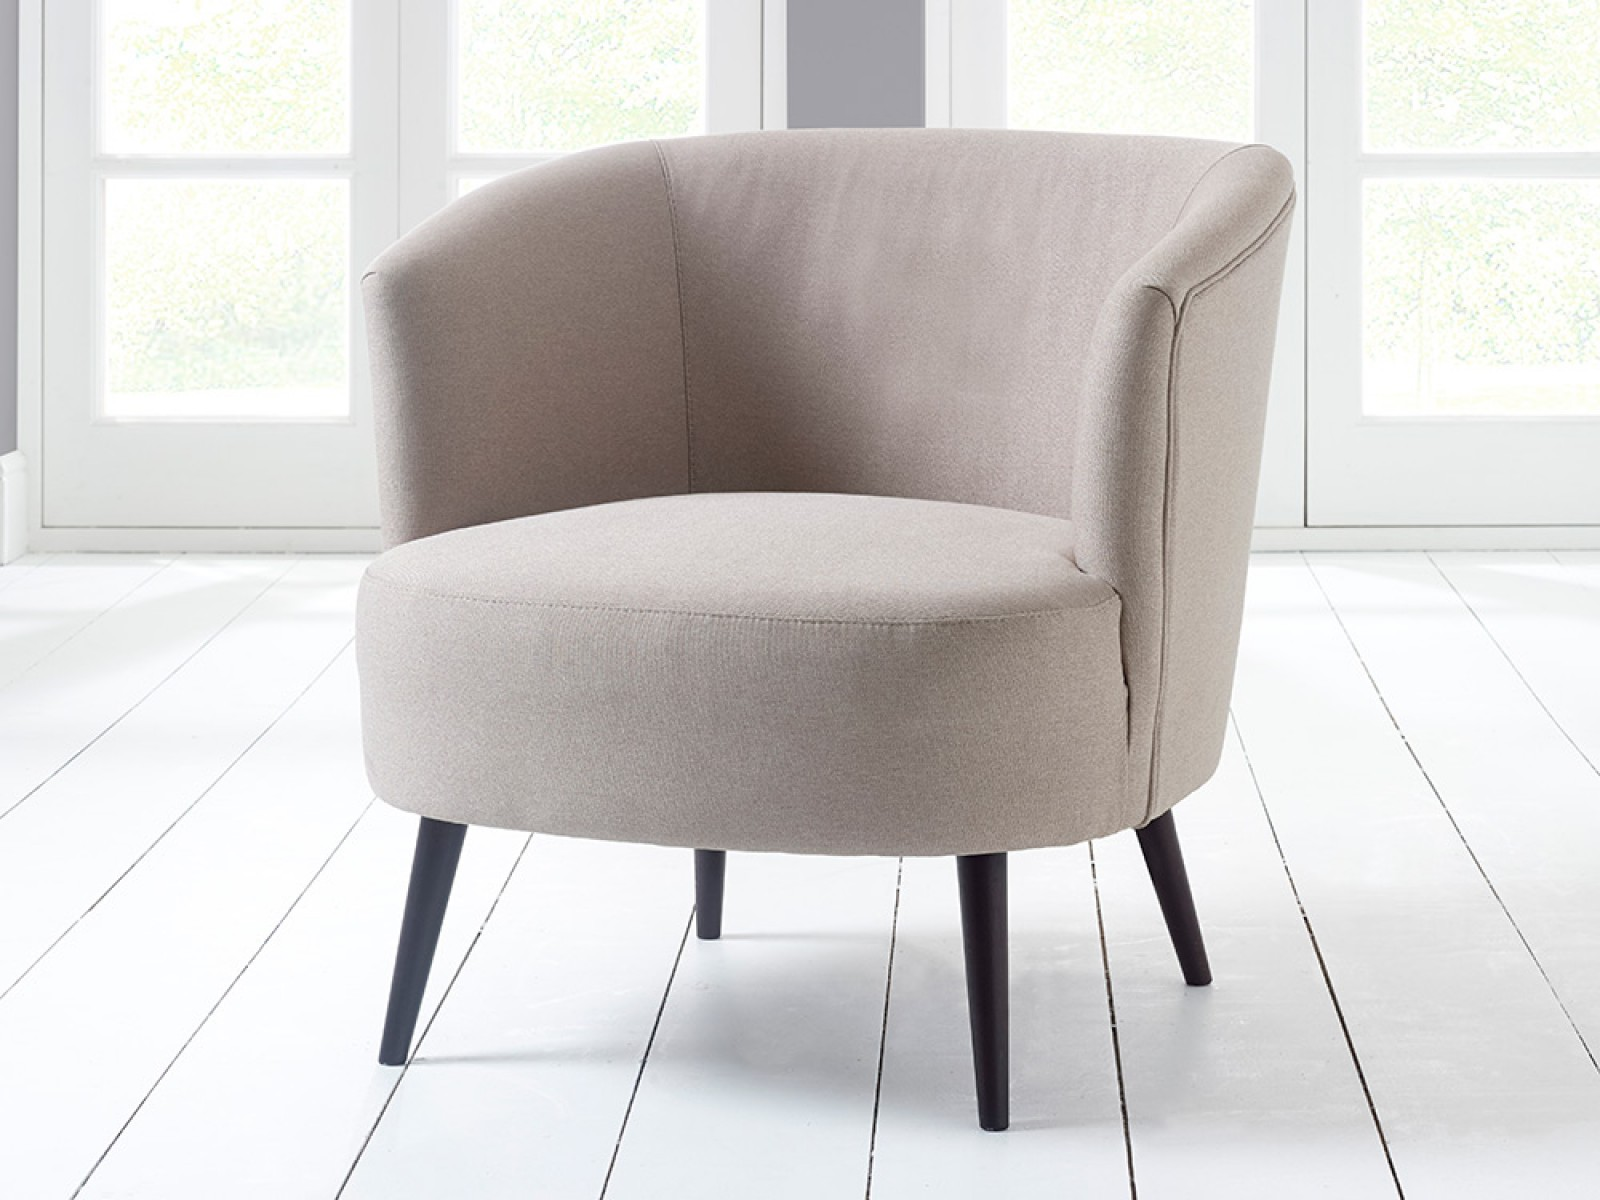 Nice Small Armchair For Bedroom 61 Remodel with Small Armchair For Bedroom